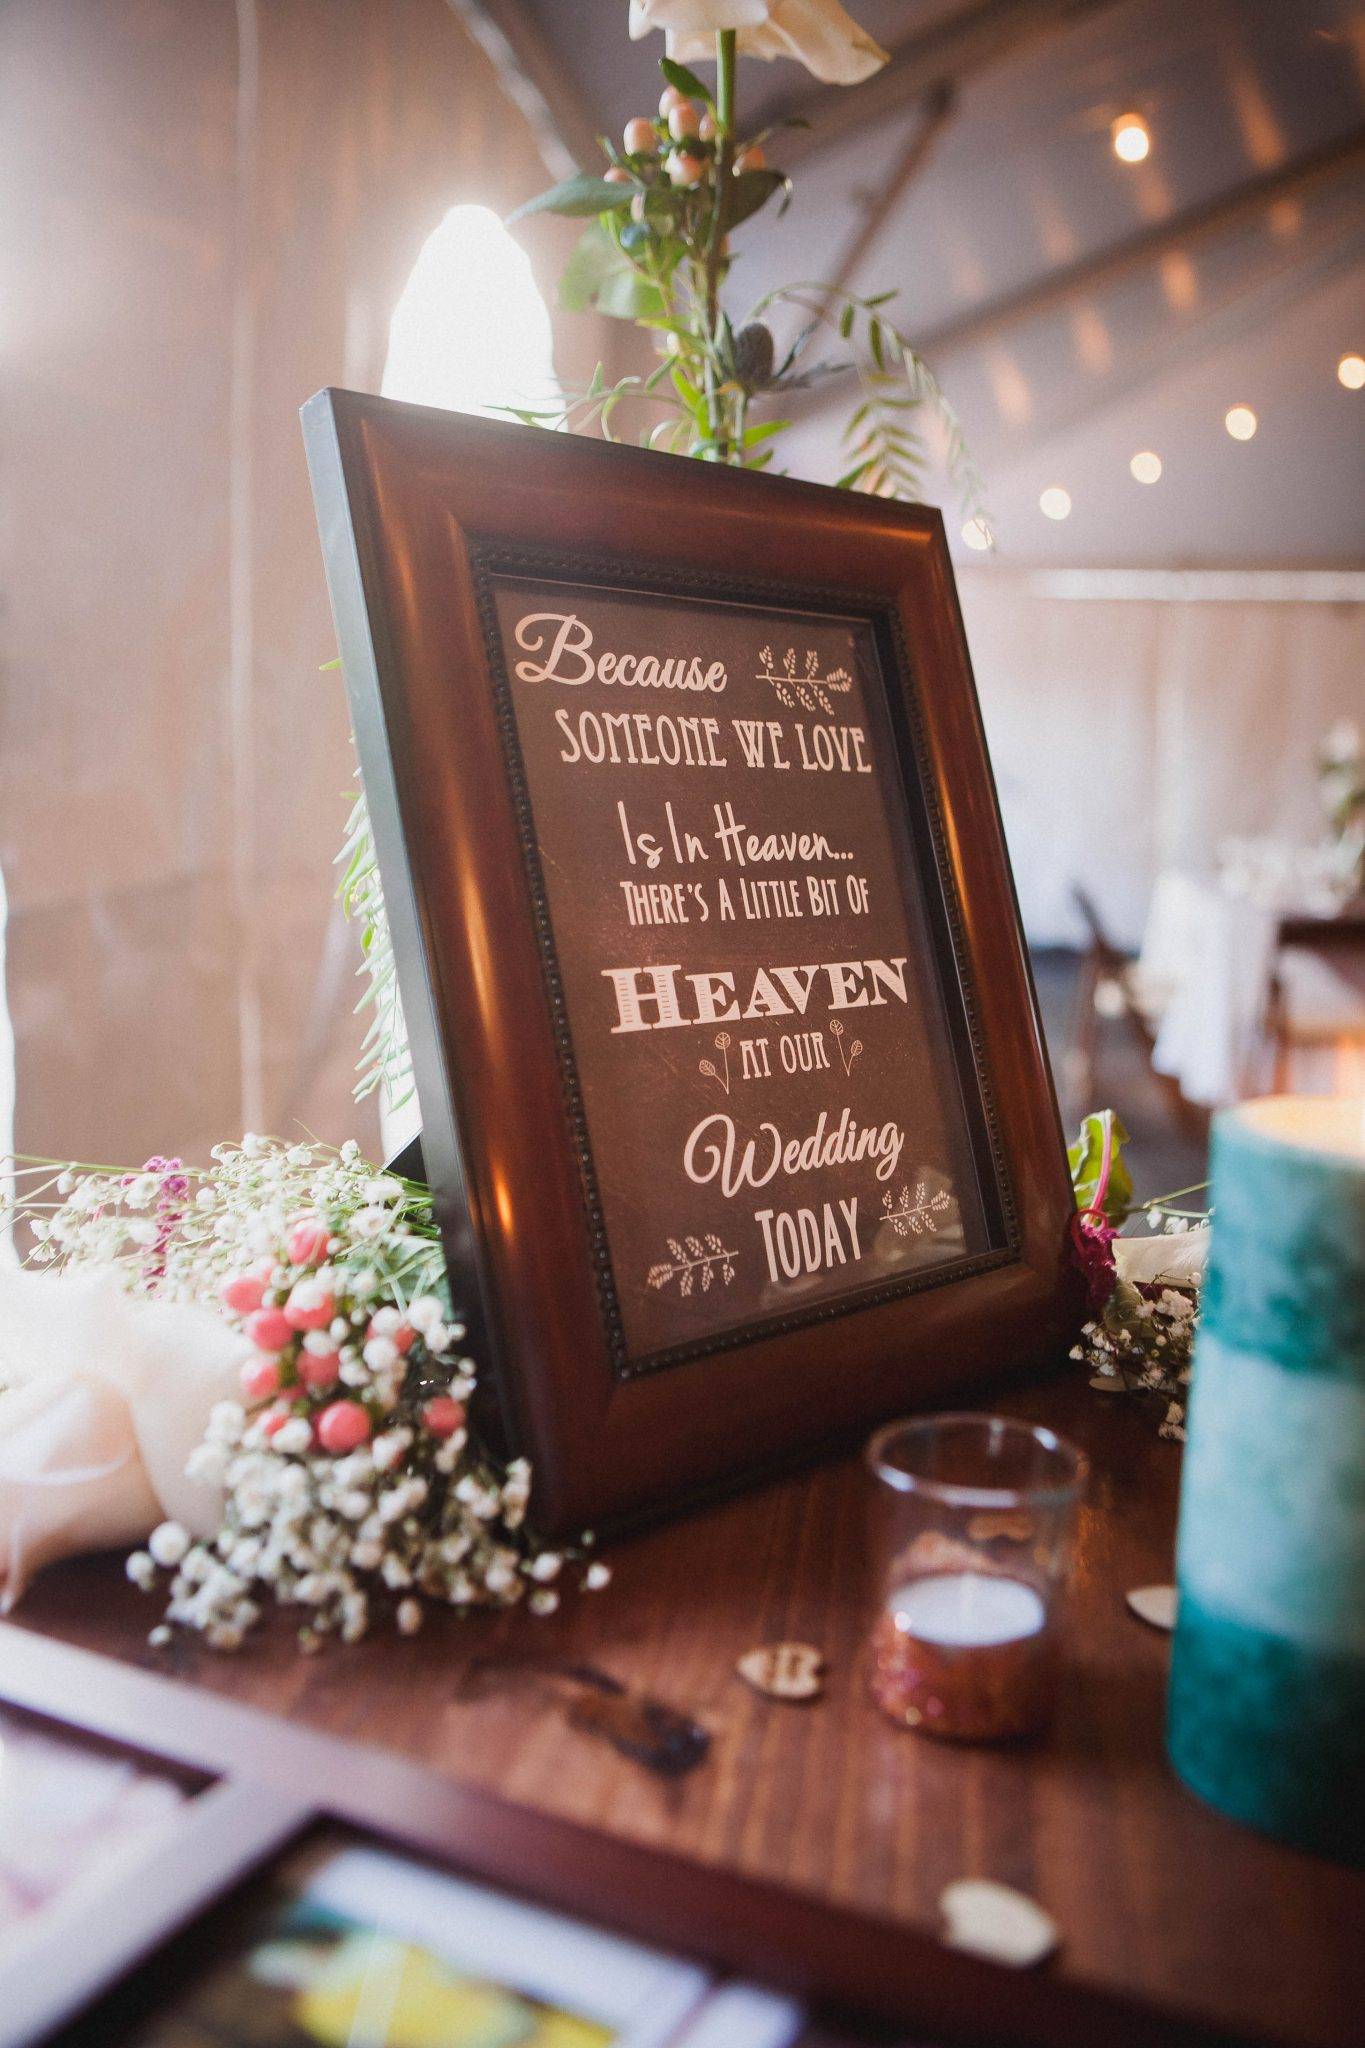 Wedding memory table to honor family members that passed away